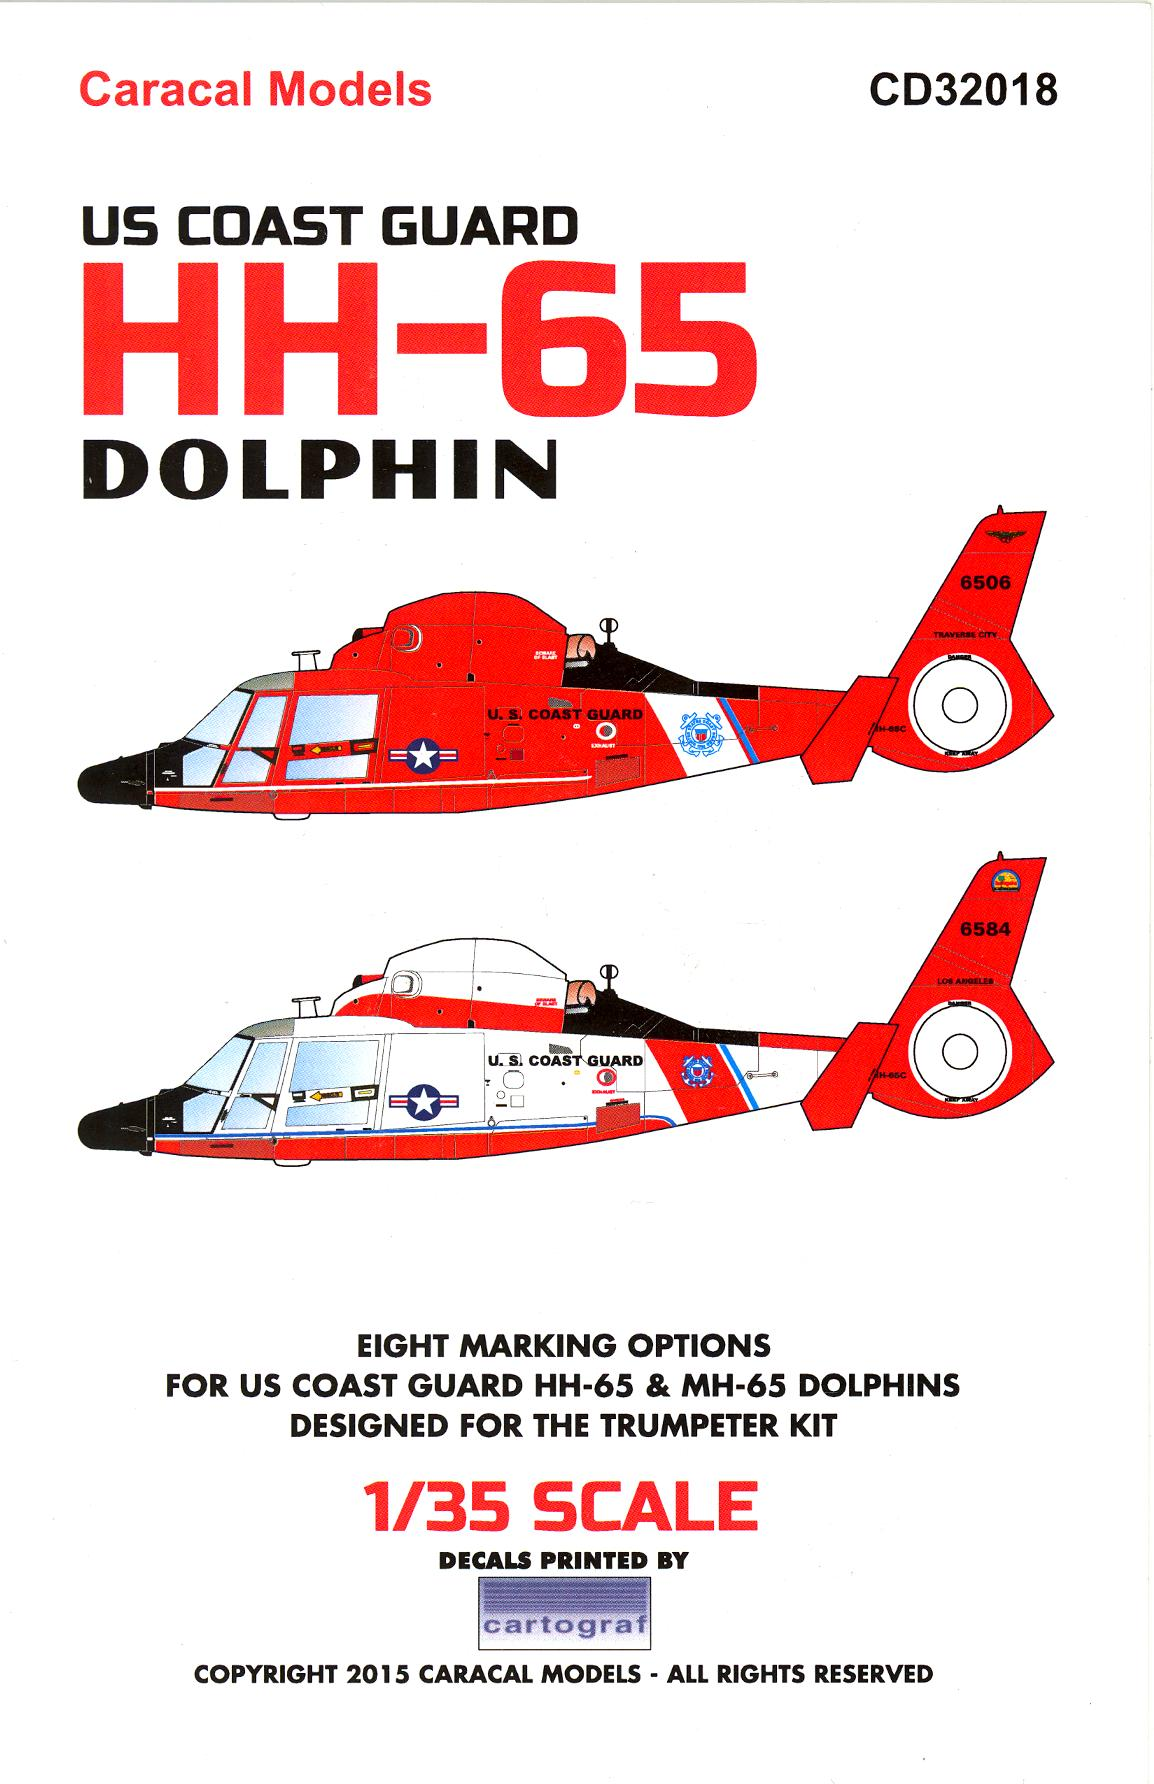 hh 65 dolphin coast guard helicopter with 131748723045 on 131748723045 further Hh 65 Dolphin Us Coast Guard Helicopter besides Watch in addition Us Coast Guard Hh 65c Dolphin Helicopter likewise Row.